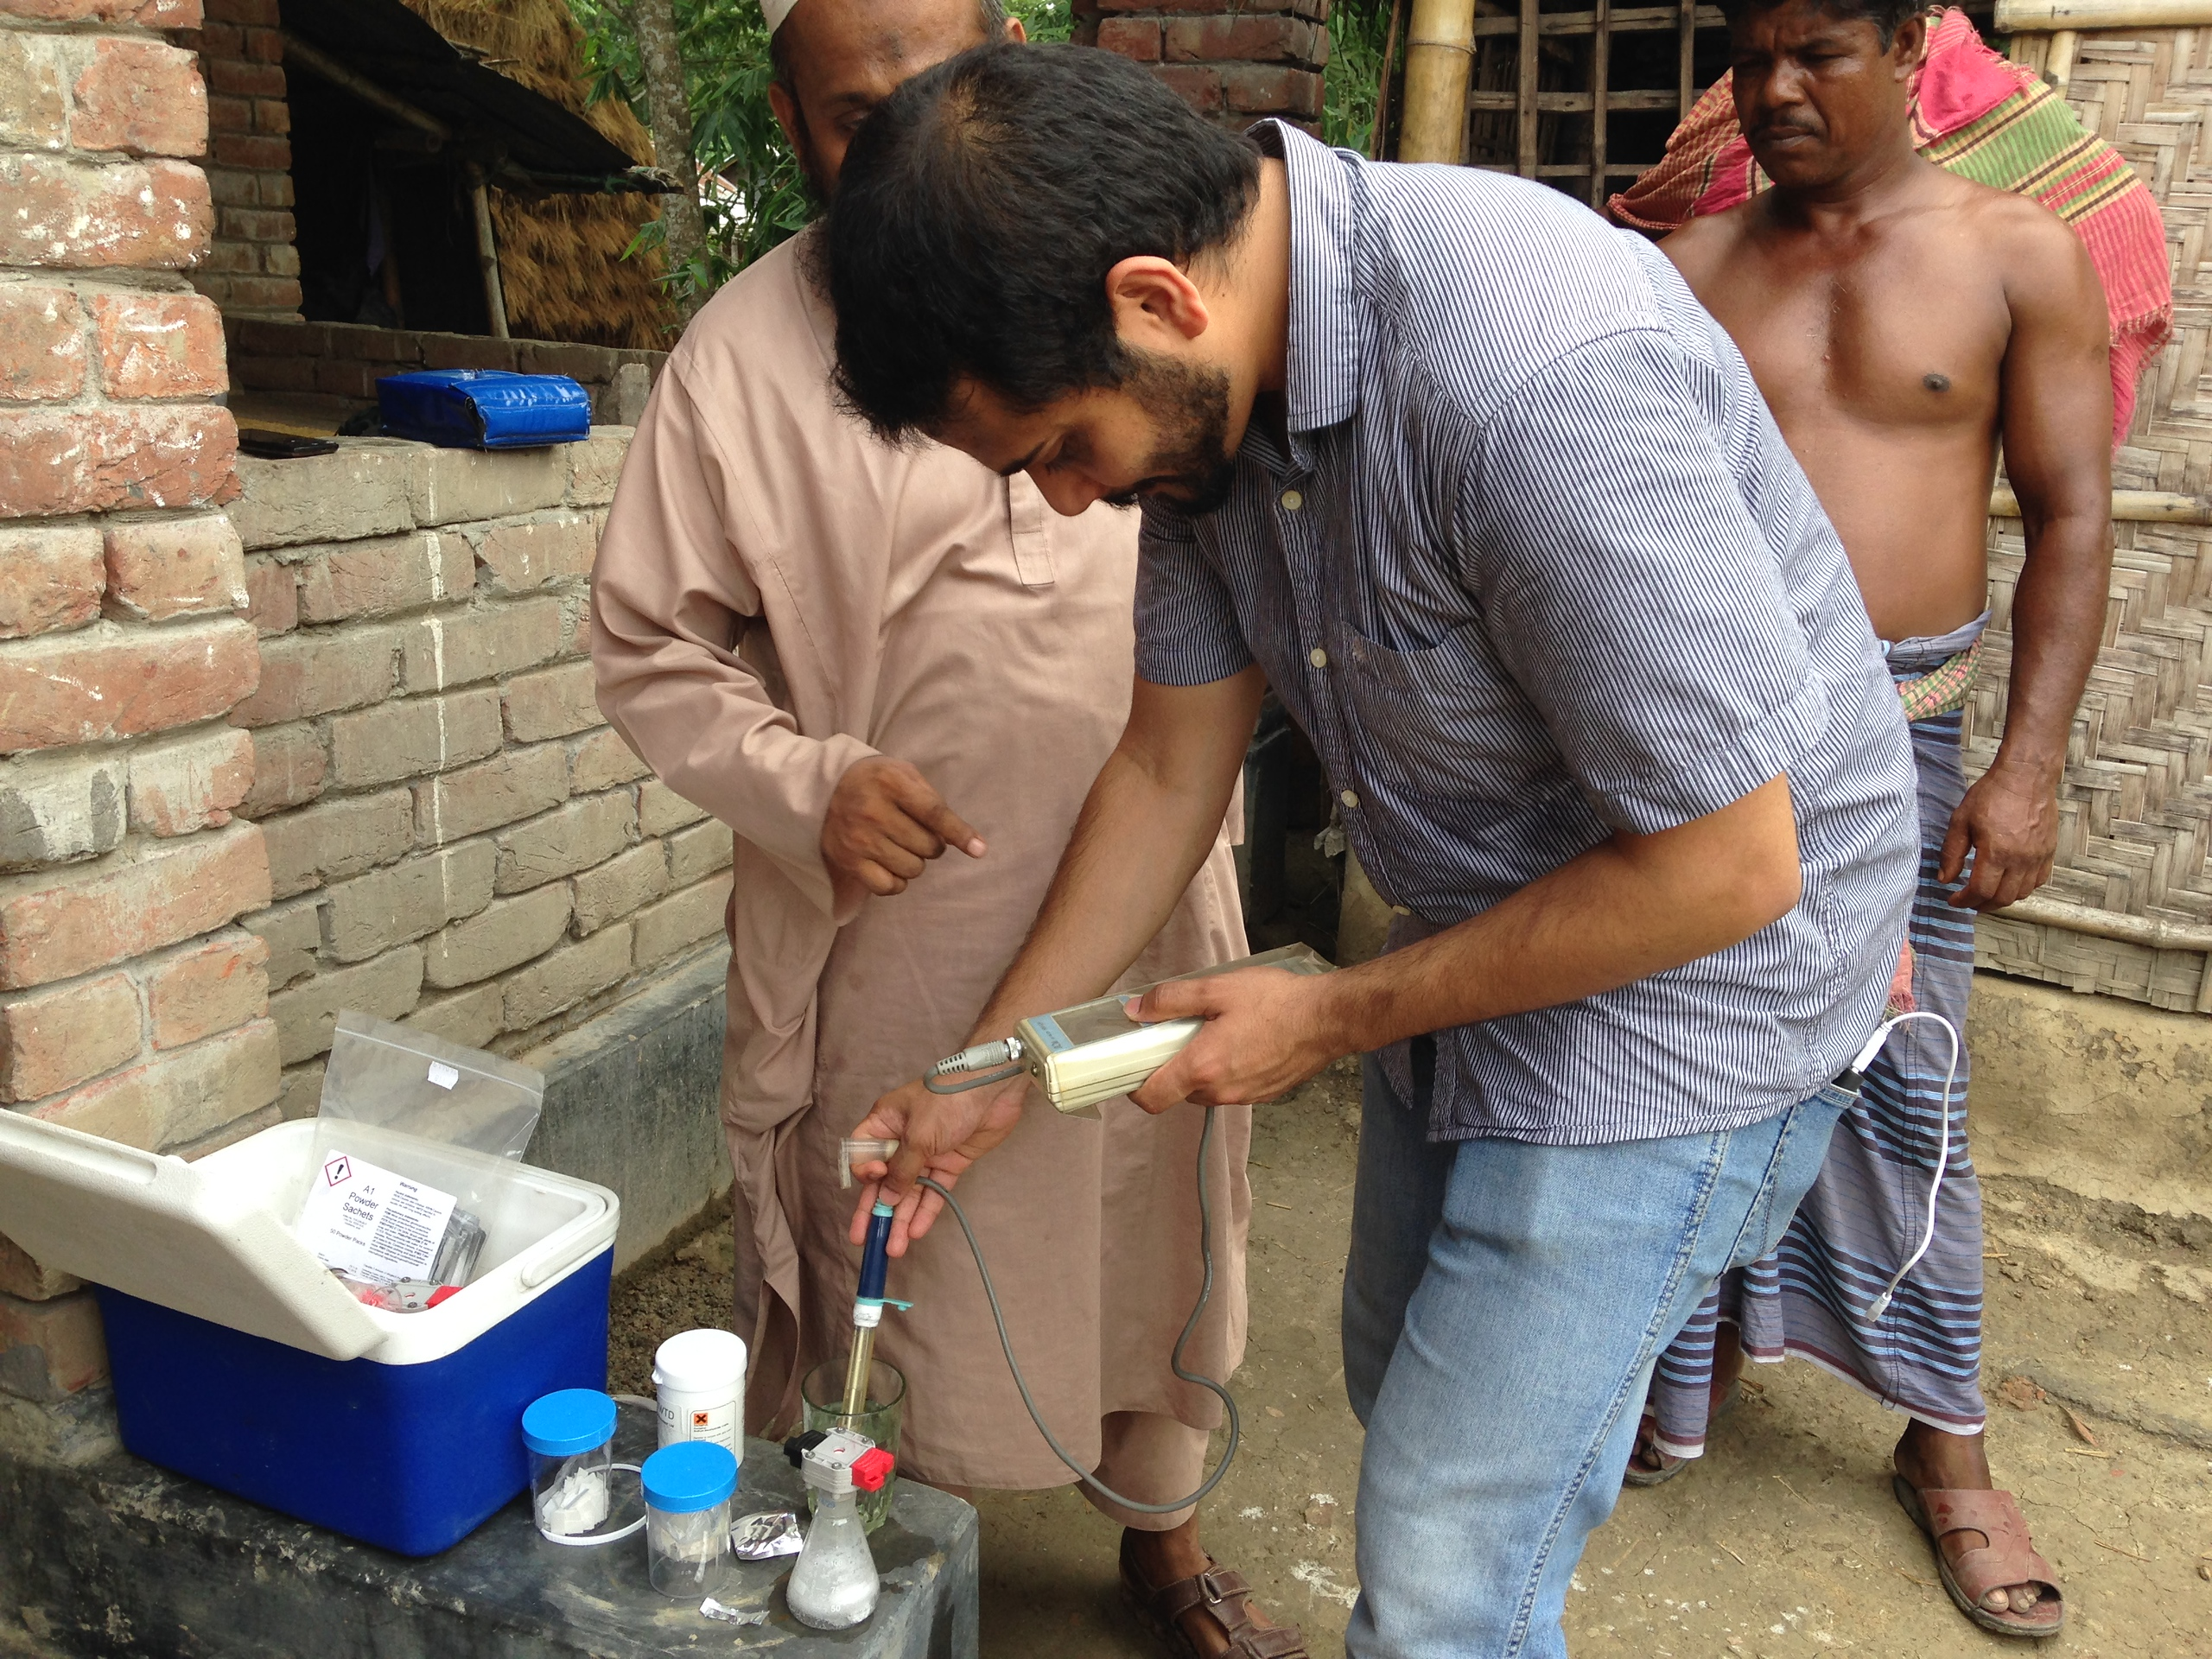 A research uses a testing kit to check for arsenic in water in a beaker